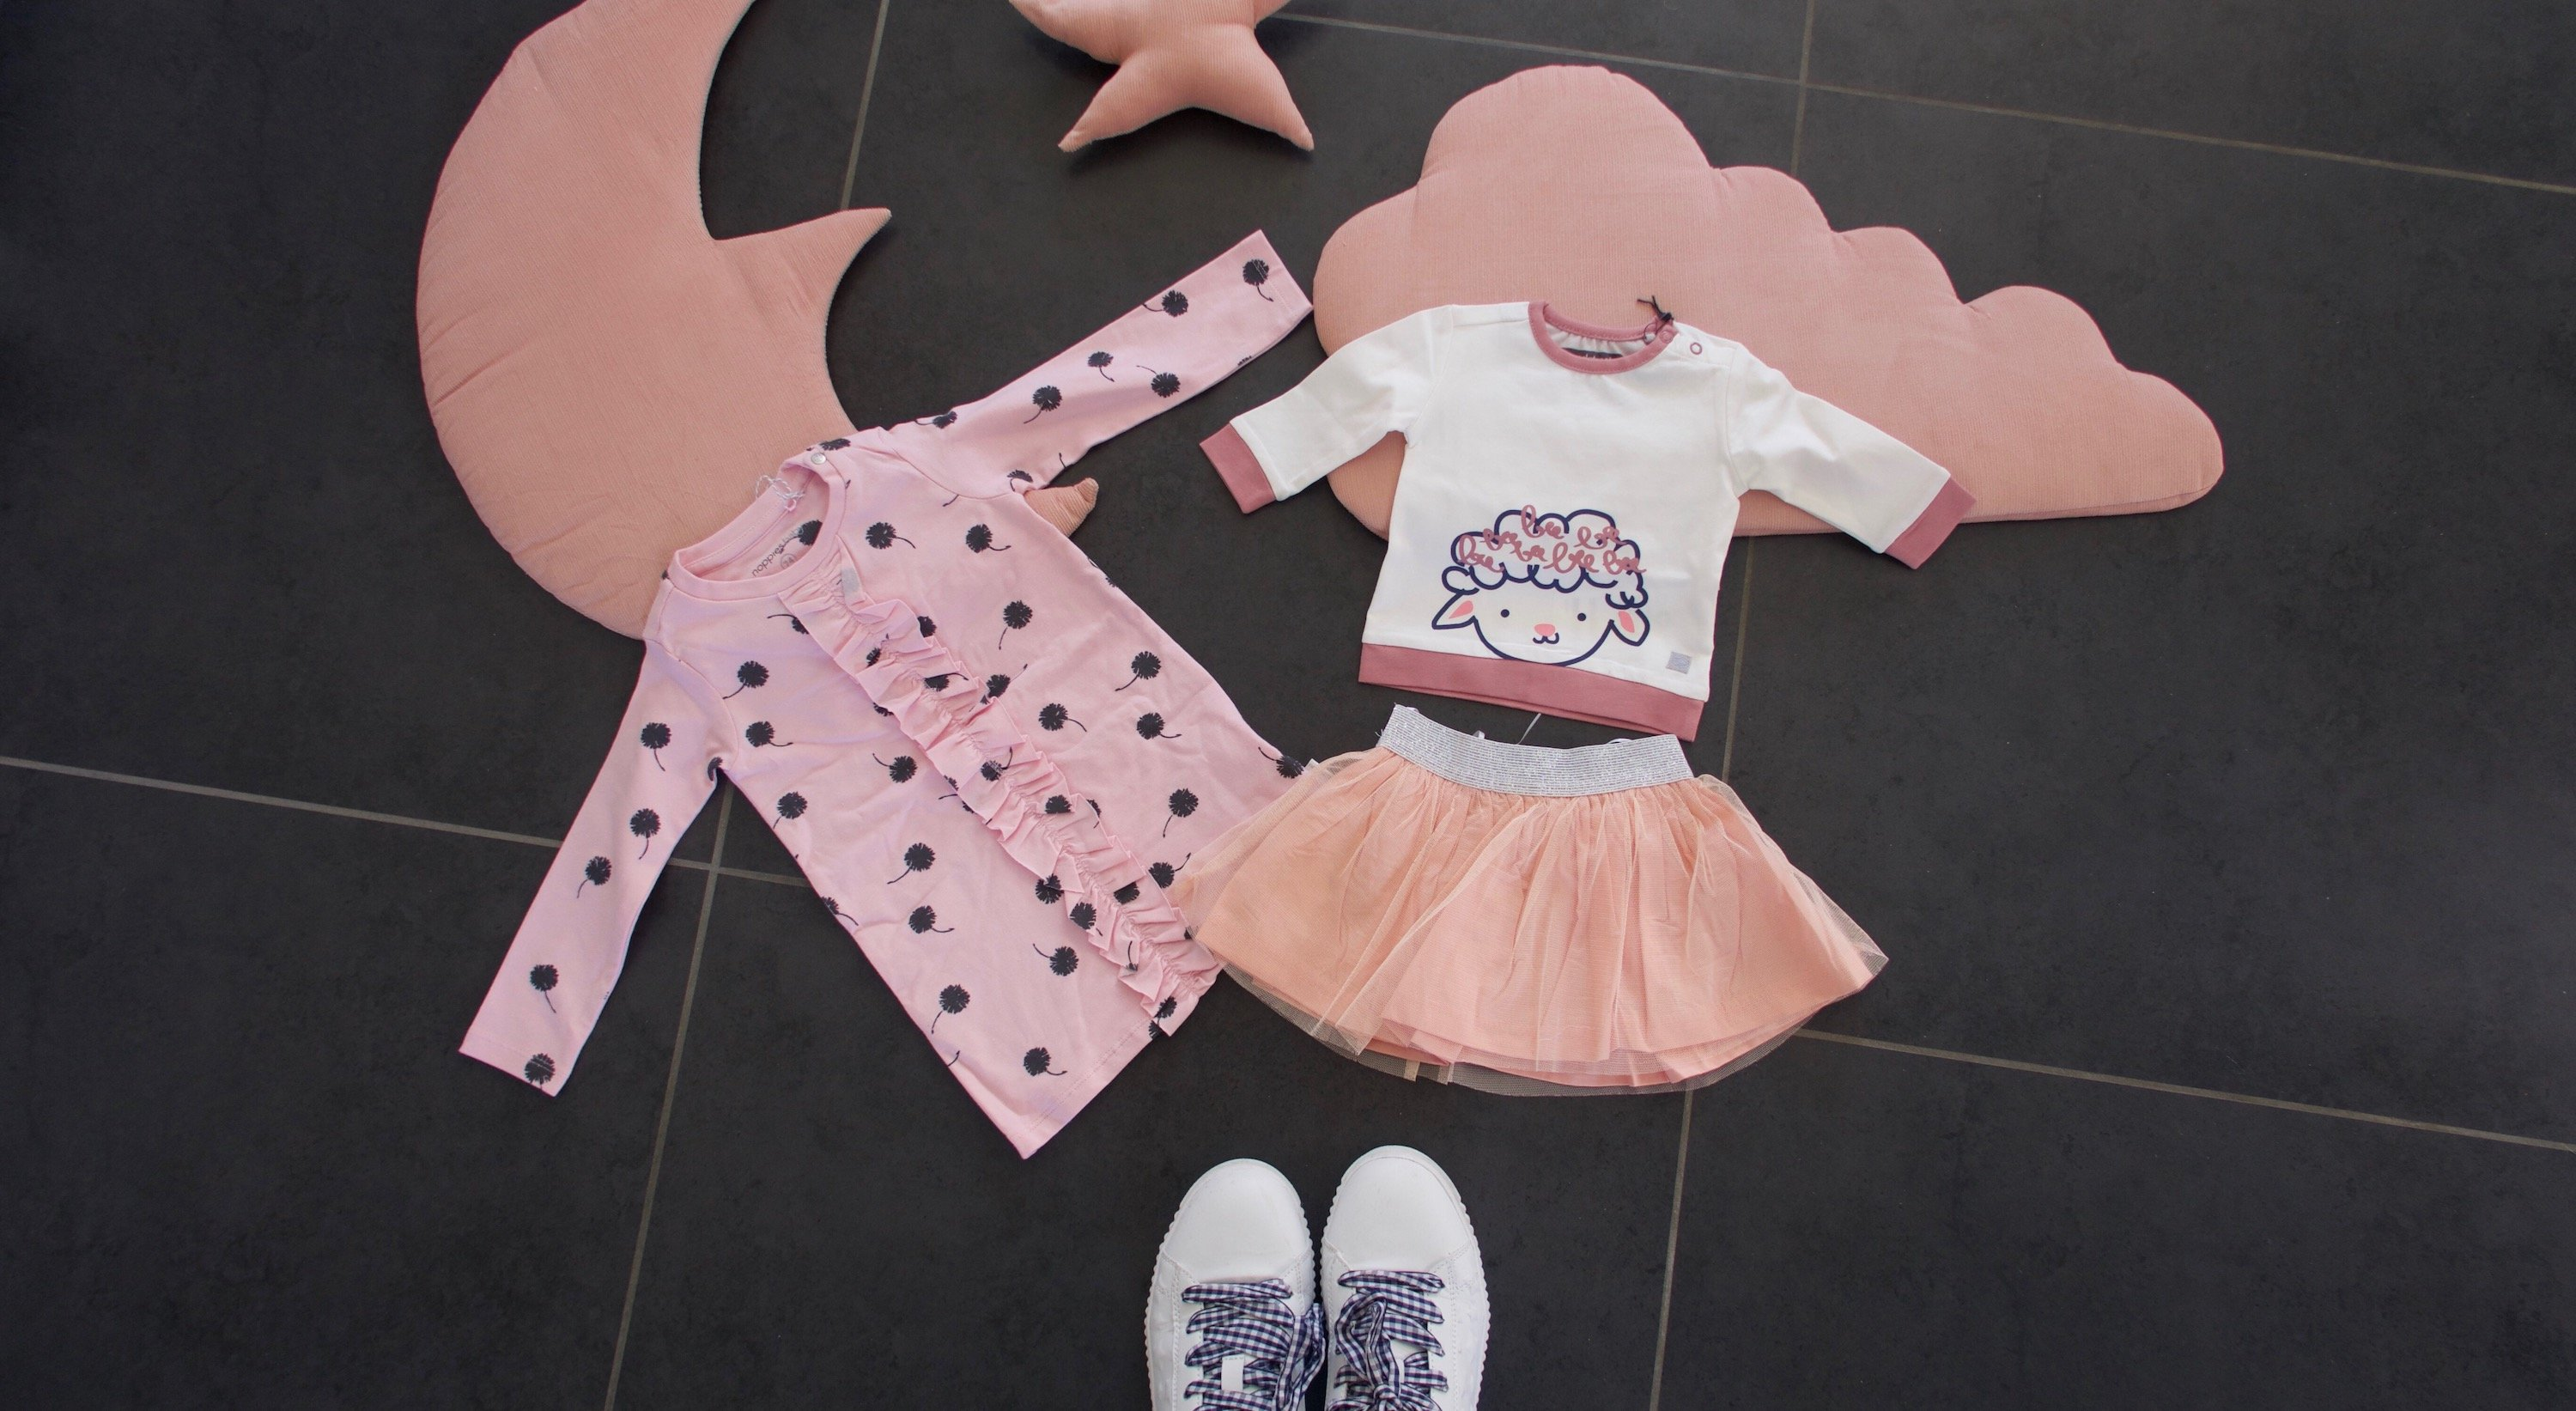 jennaminnie jenna minnie fashion blog Schattige babykleertjes!!!